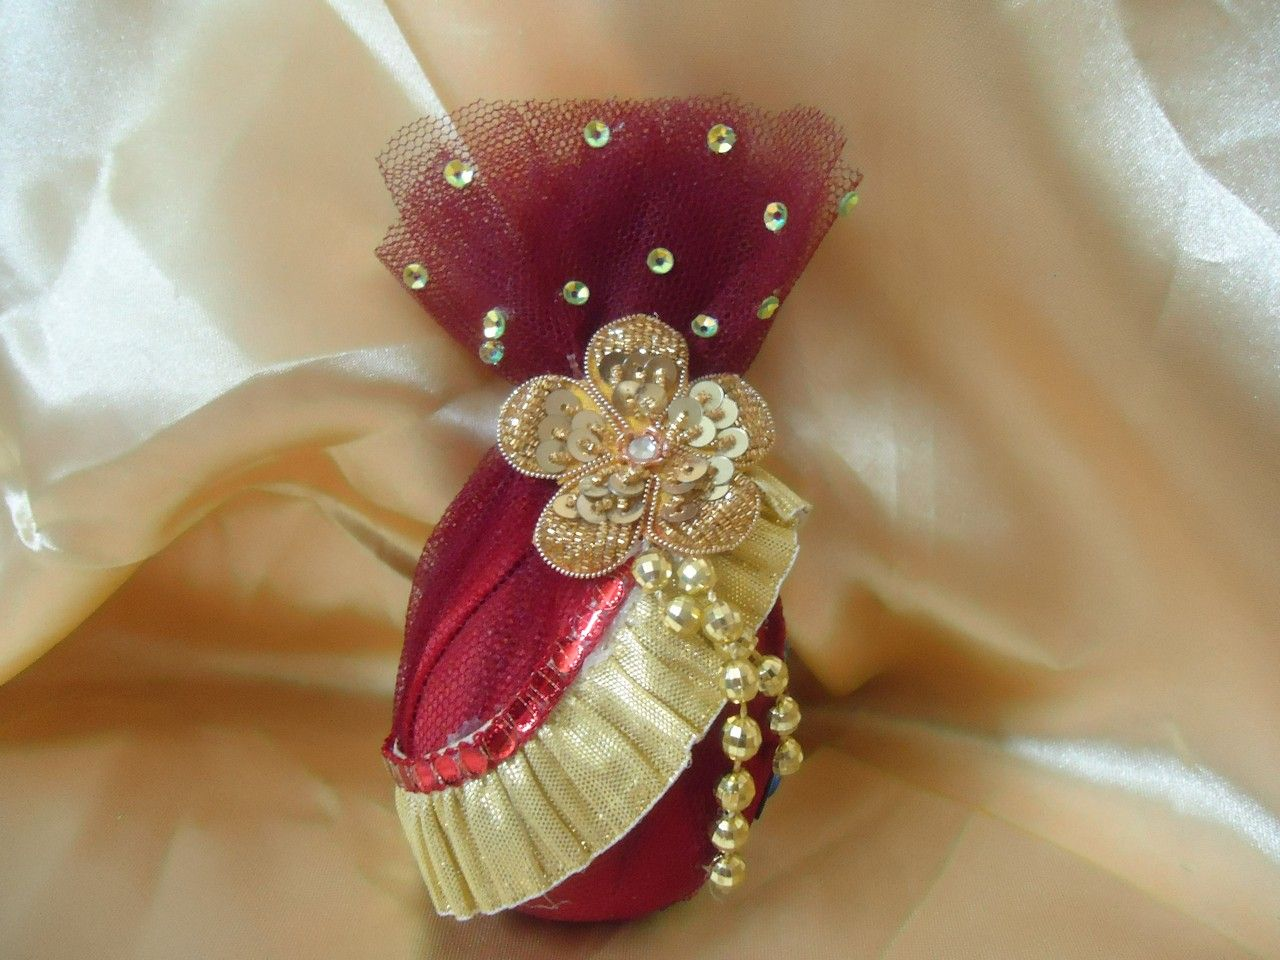 Can you guess that its a coconut inside that packing wedding we dealing with engagement ring platter trousseau wedding packing cosmetic packing corporate packing in delhi ncr and india level junglespirit Image collections